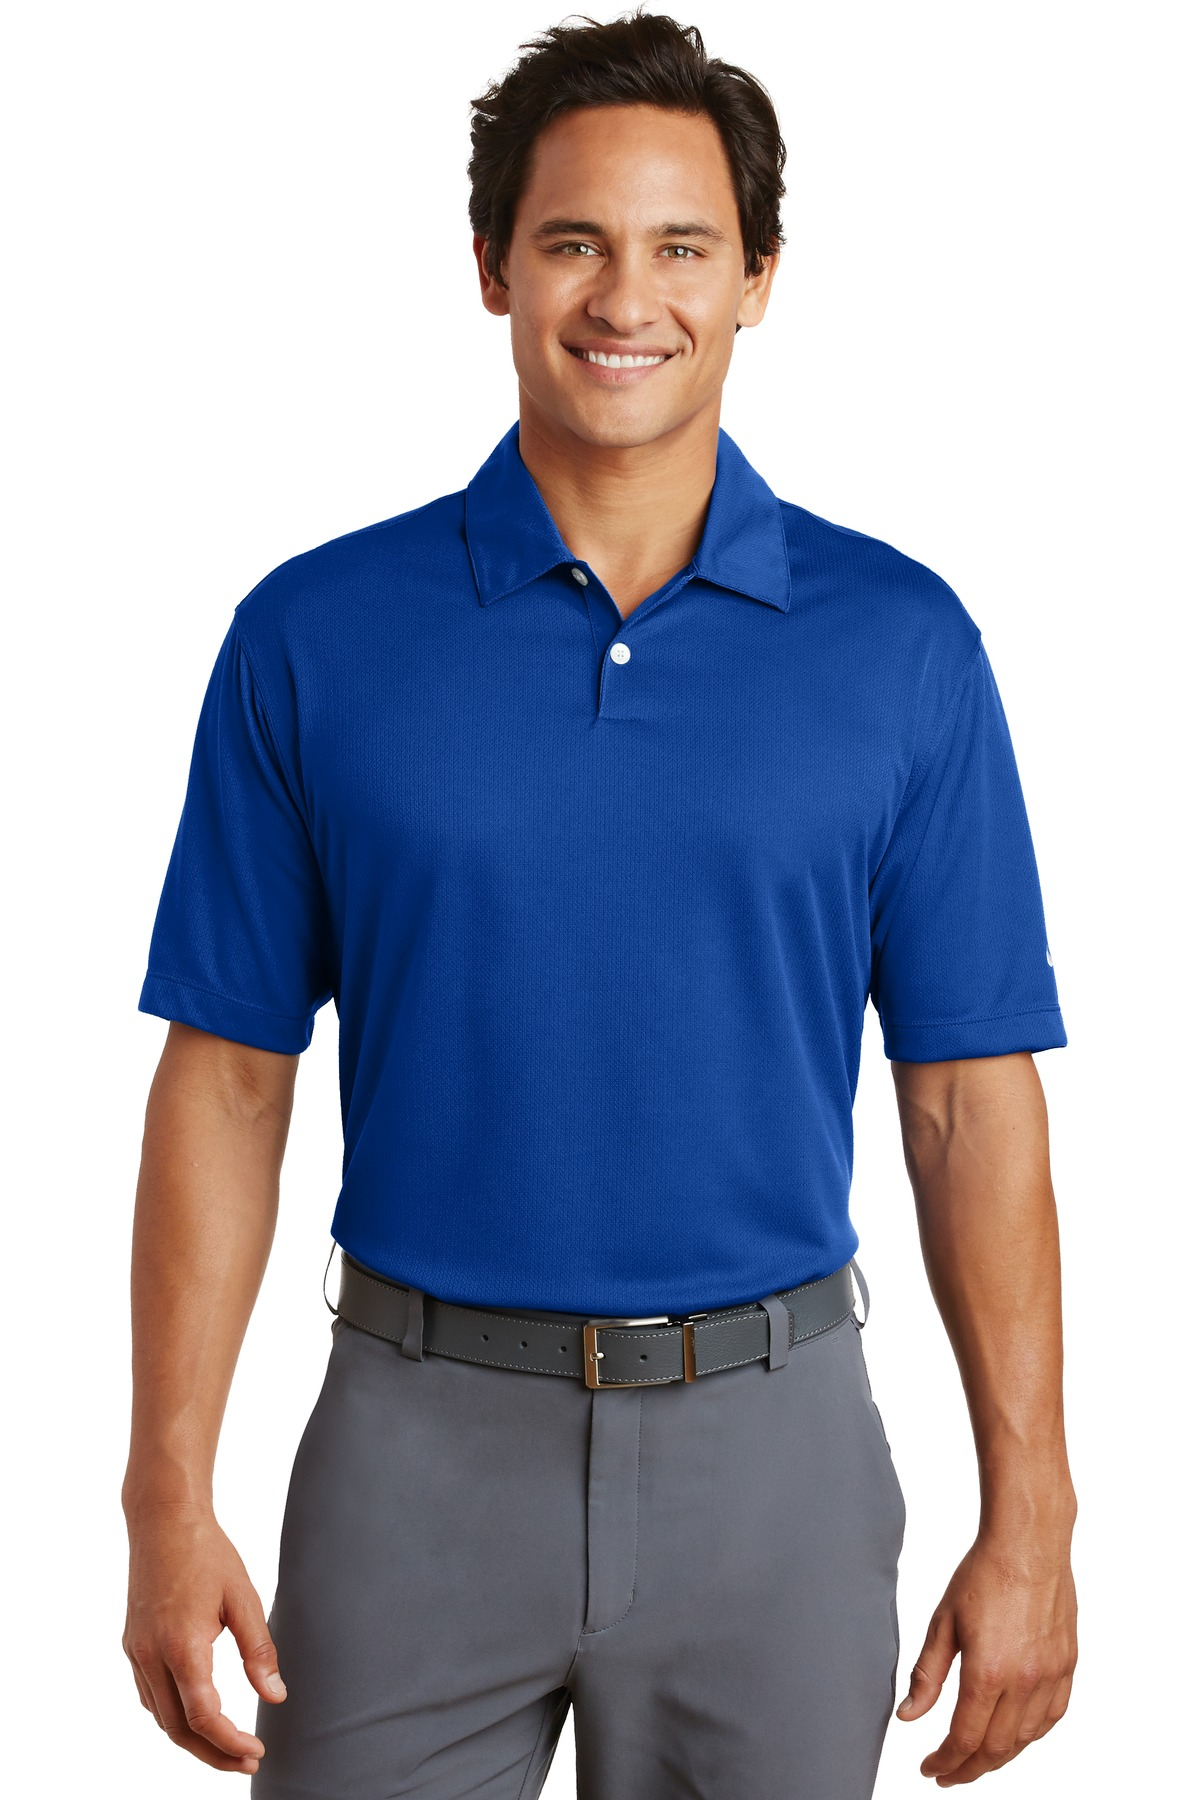 Nike Dri-FIT Pebble Texture Polo. 373749 - Varsity Royal